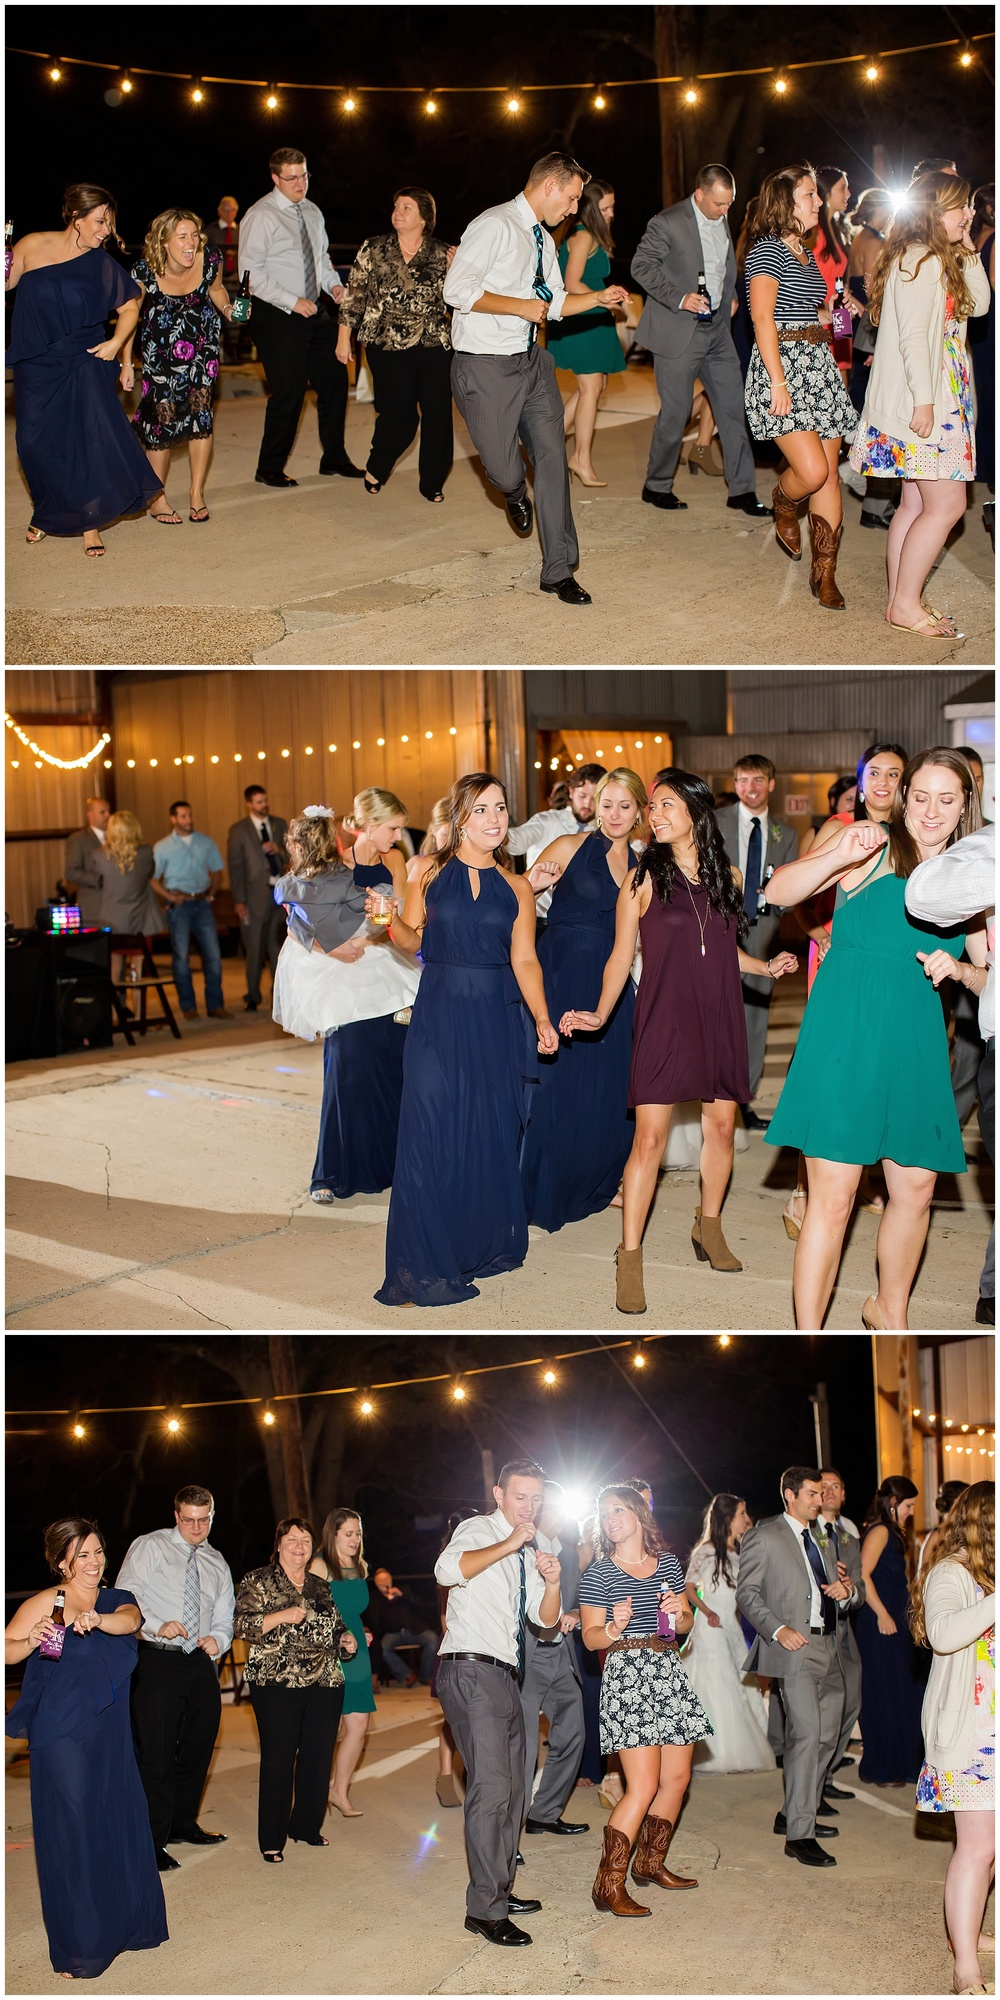 Kinler_DixieGin_Shreveport_Wedding_77.jpg